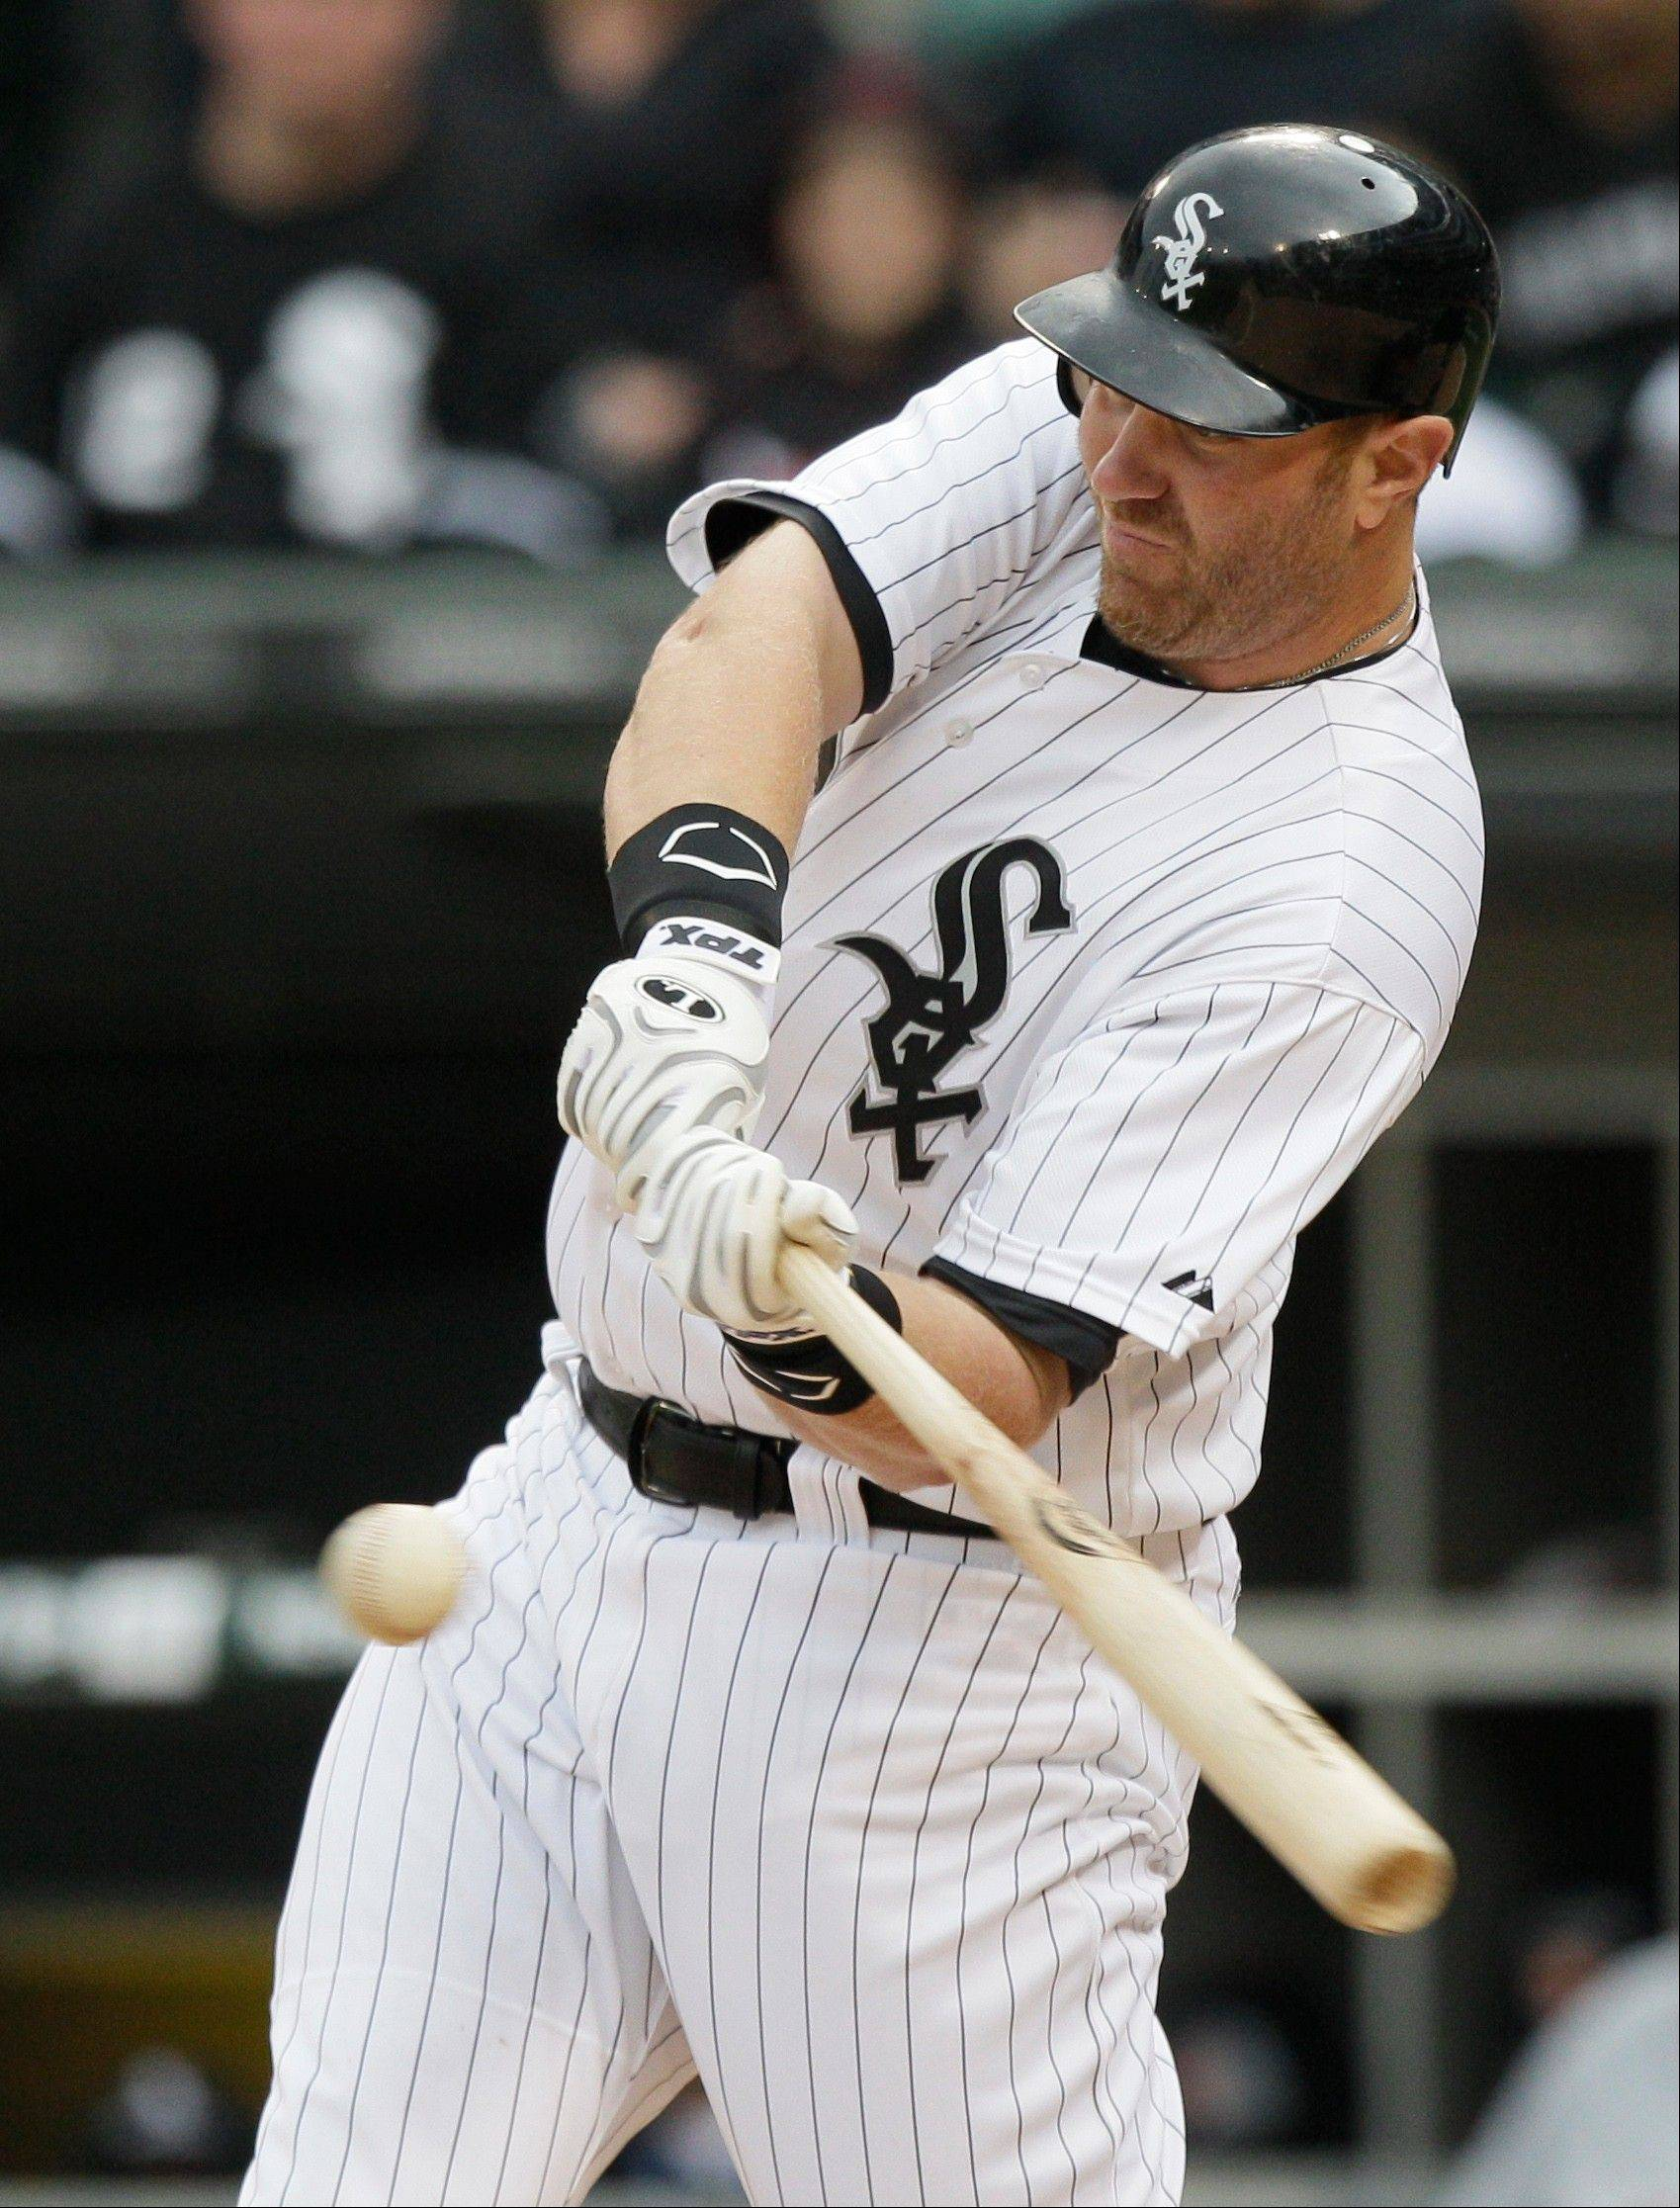 Chicago White Sox's Adam Dunn hits a one-run double against the Detroit Tigers during the sixth inning of a baseball game in Chicago, Saturday, April 14, 2012.